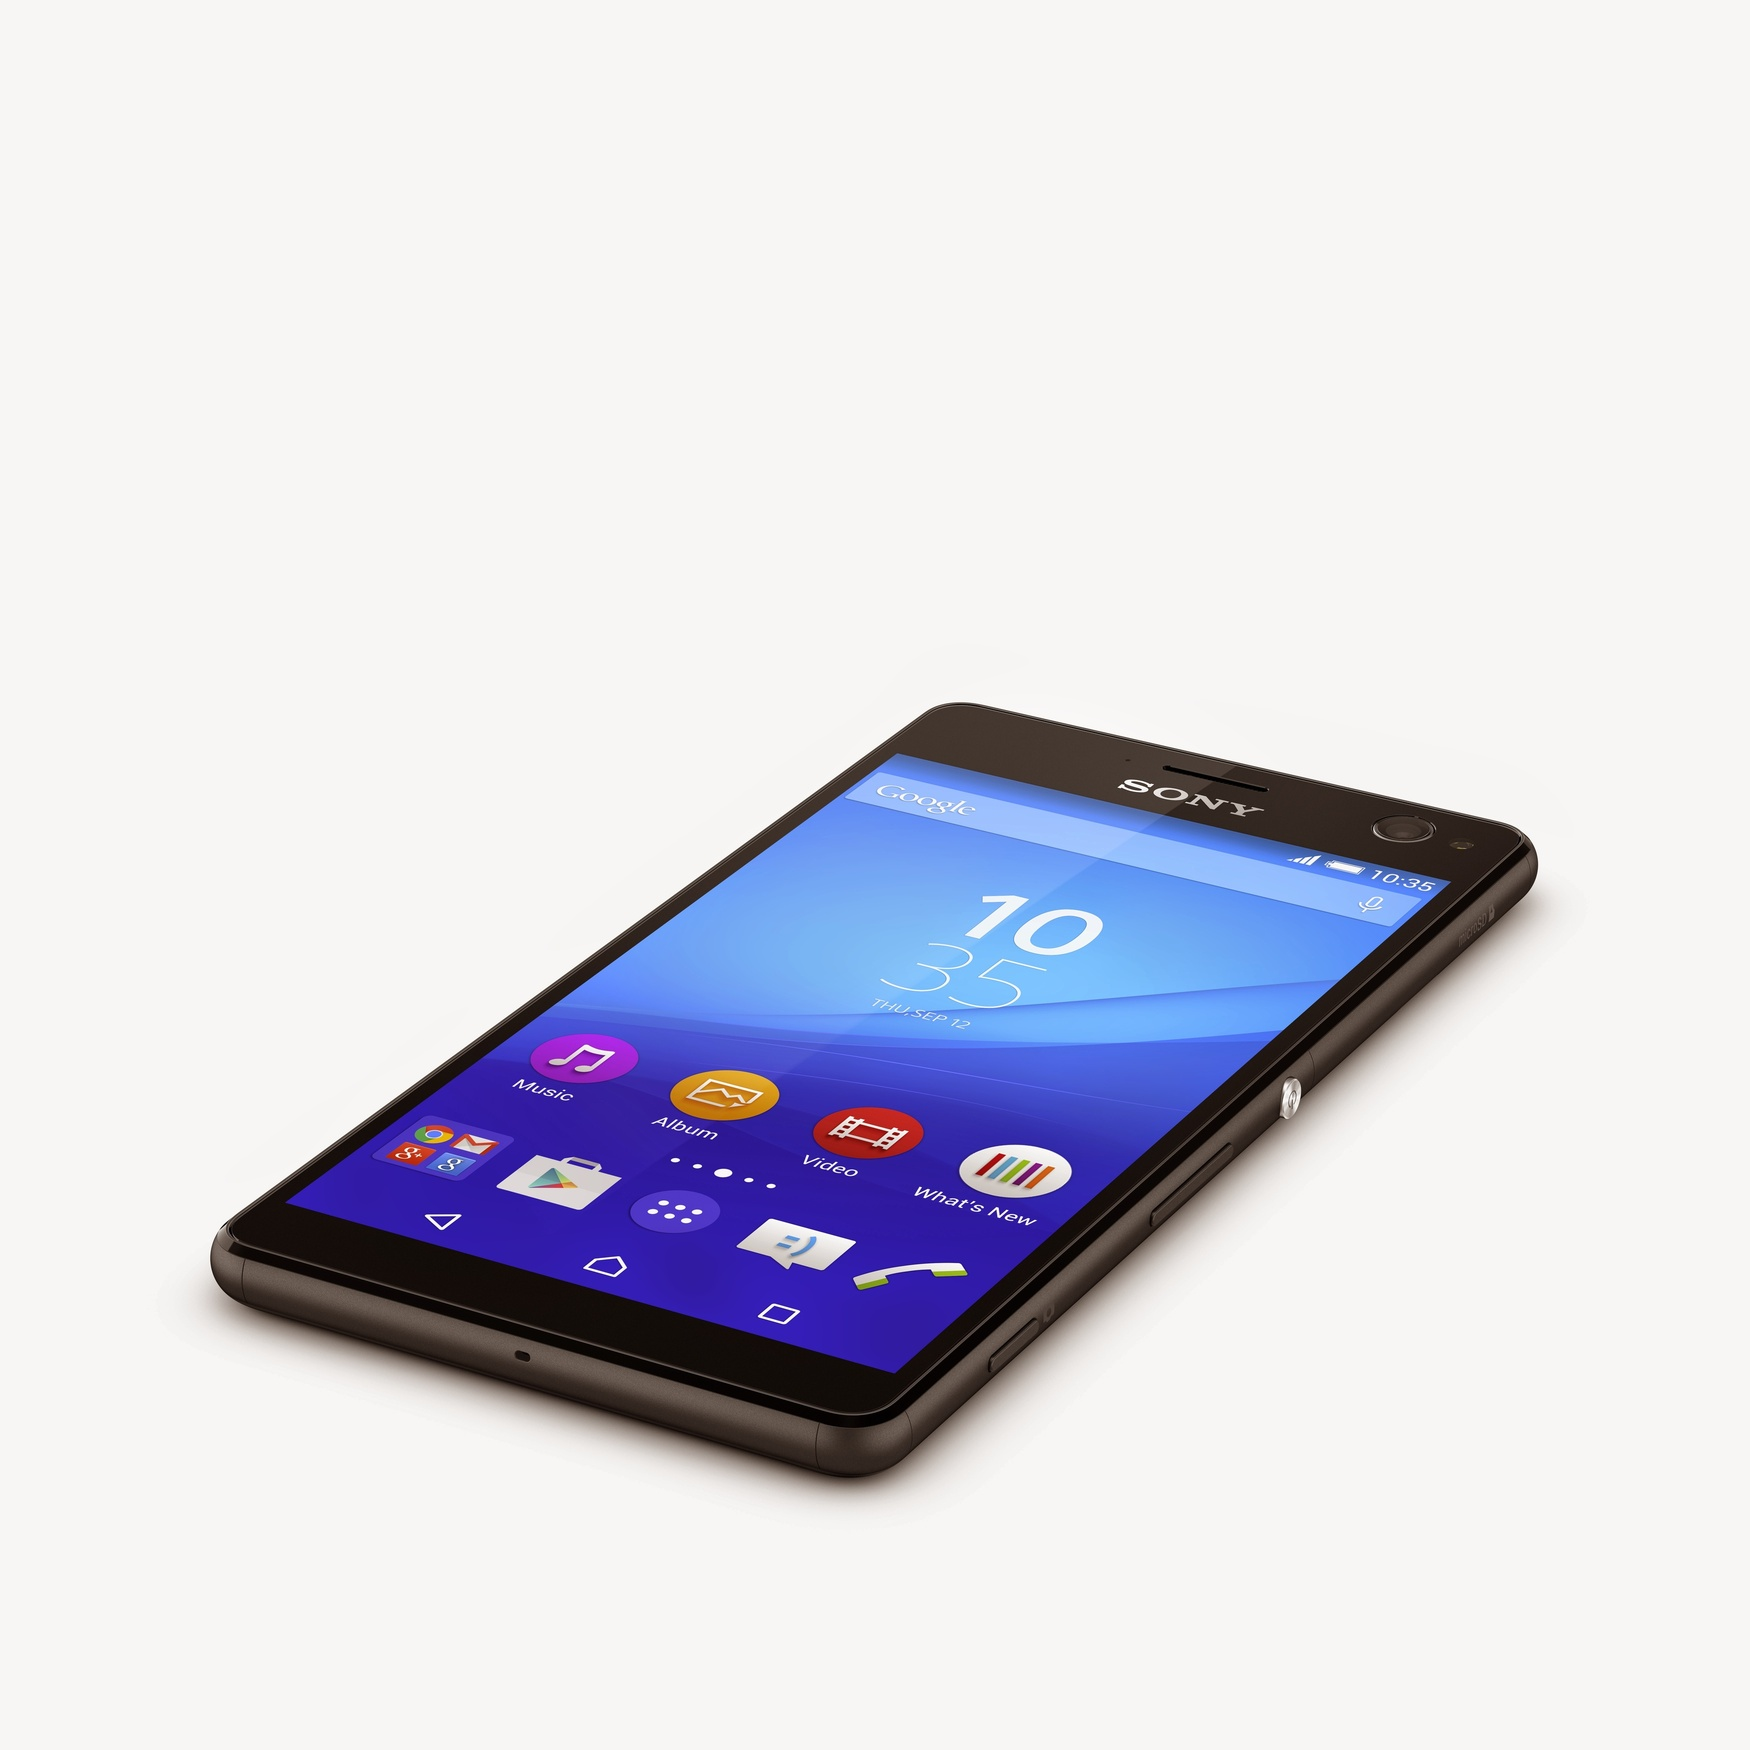 Sony-Xperia-C4-images (8)